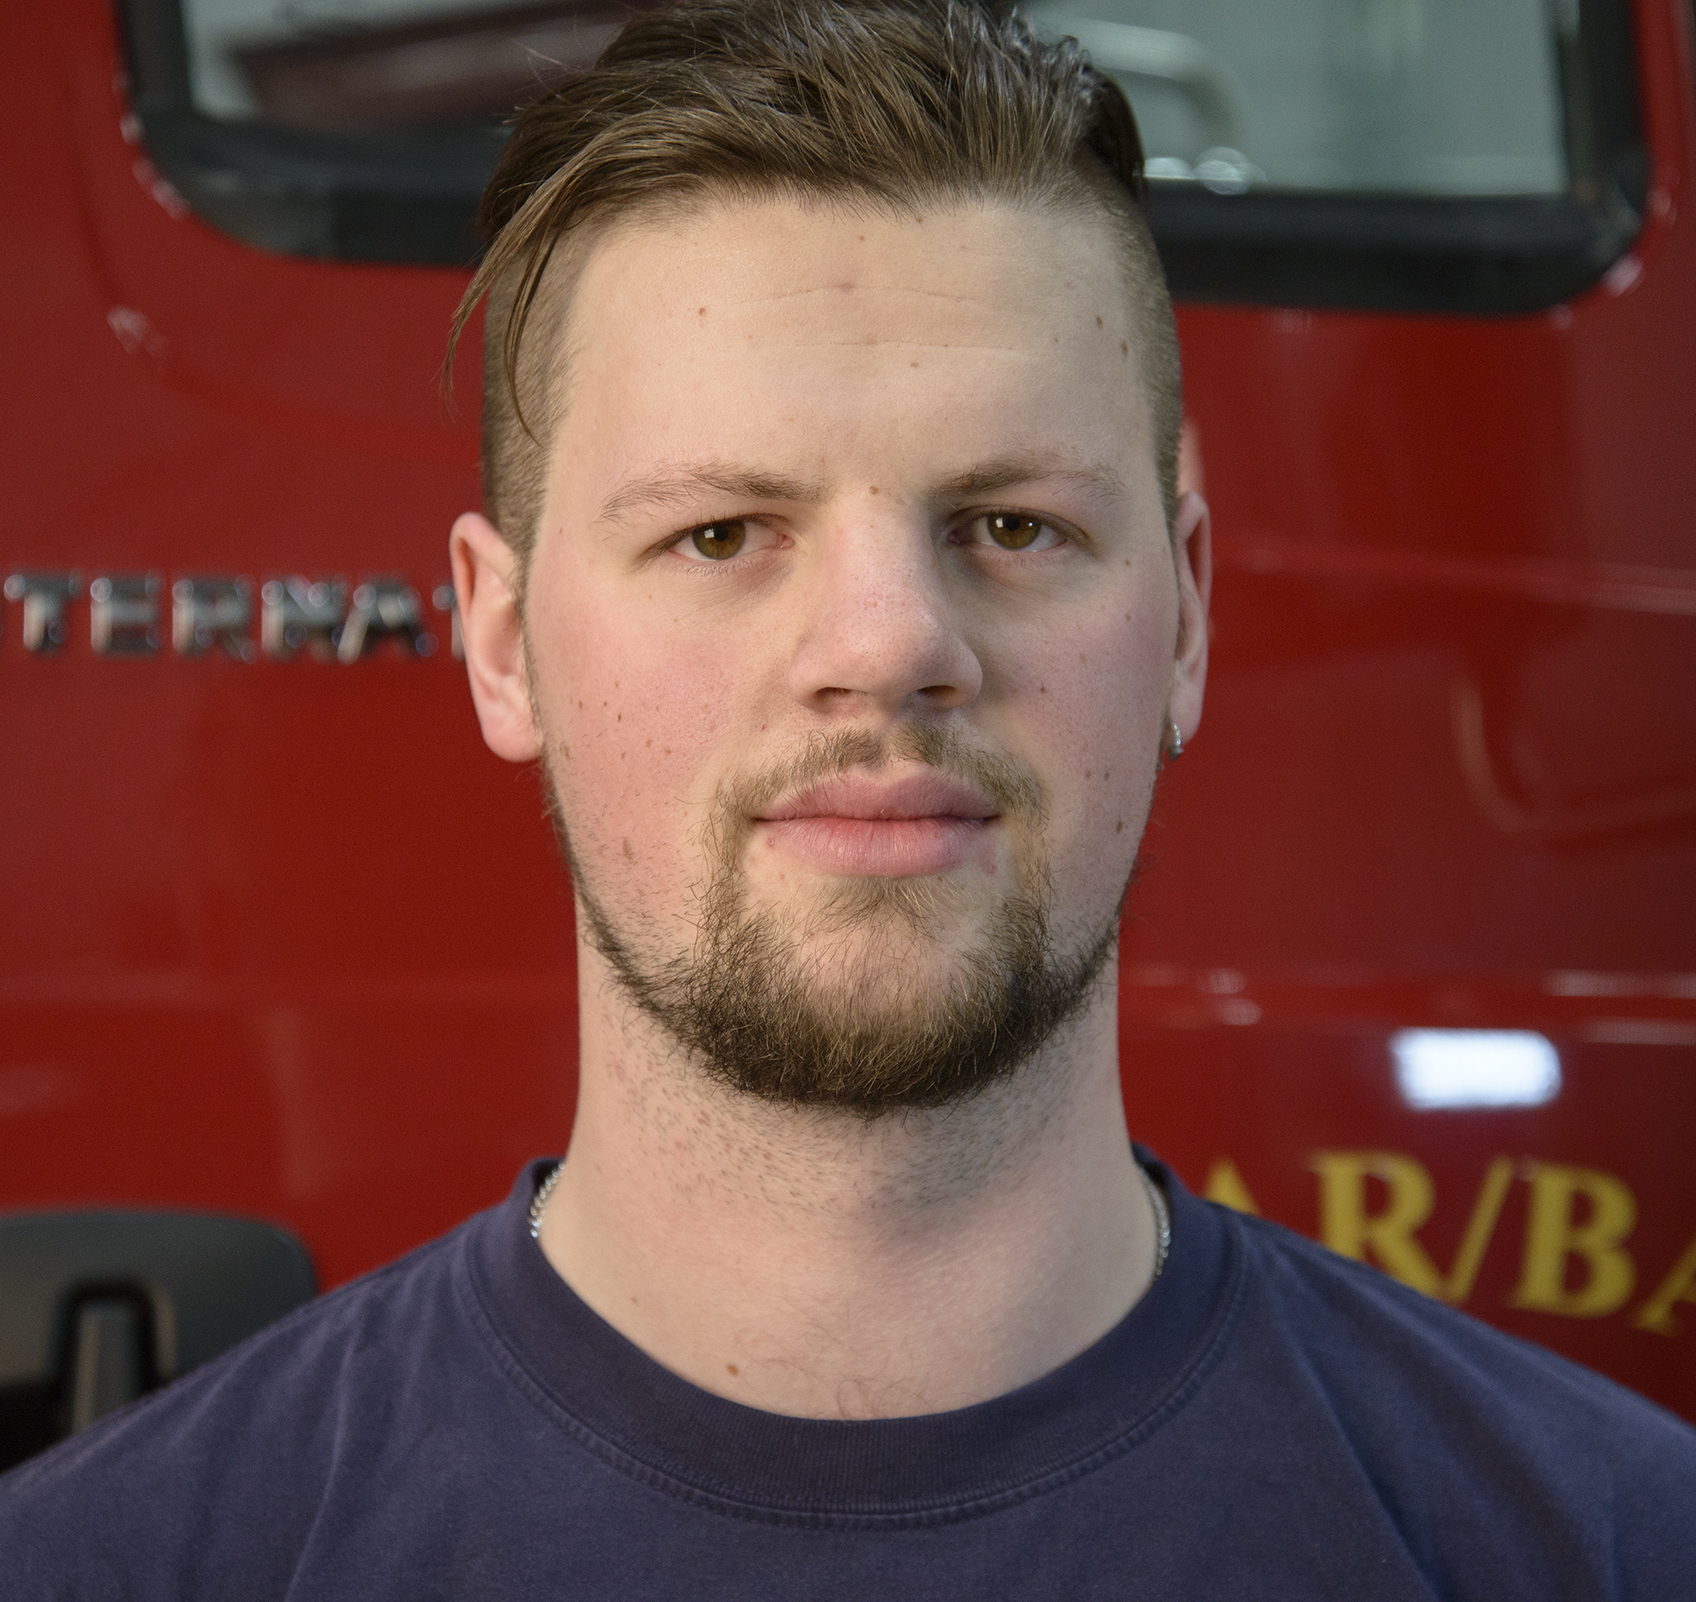 Nick Smart, Firefighter